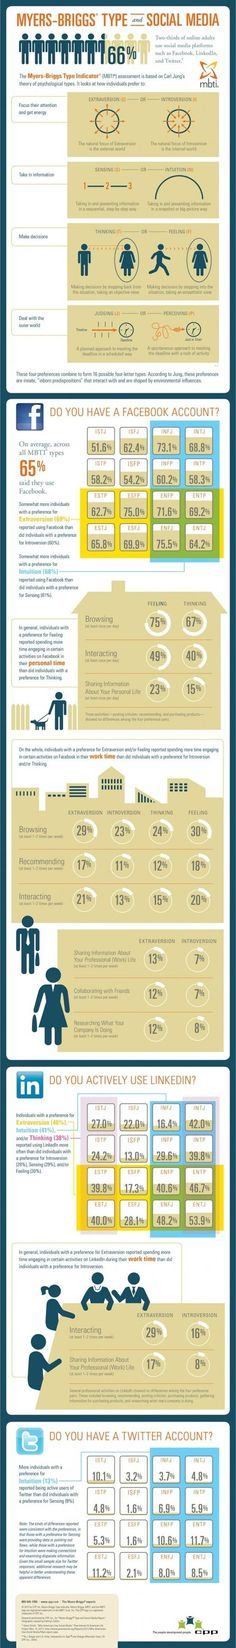 What Do Your Social Networking Habits Say About Your Personality?